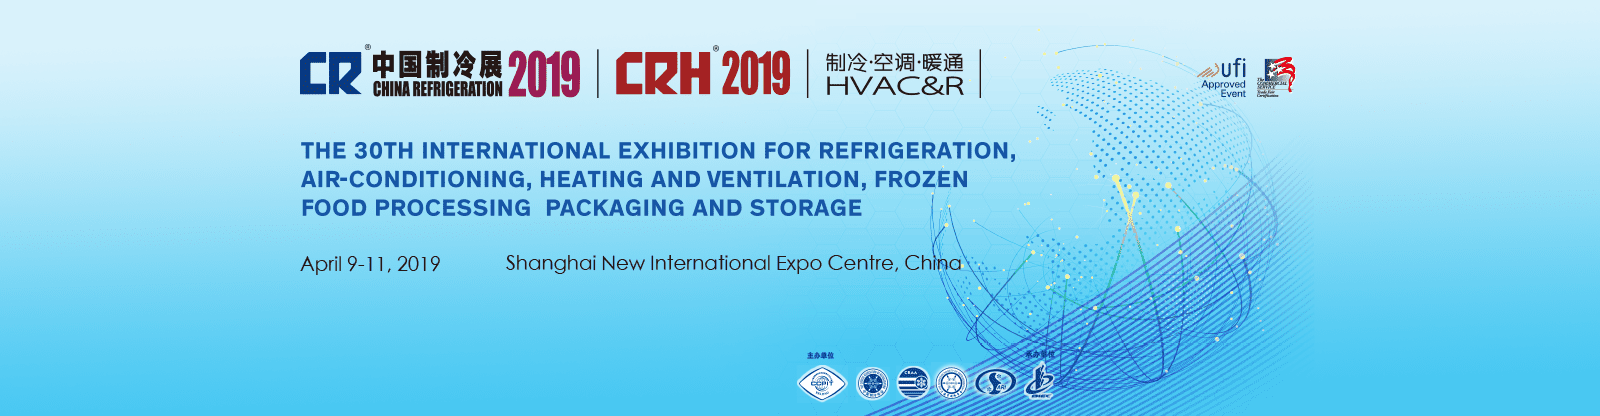 China Refrigeration & AC Expo - Shanghai, China - Tour